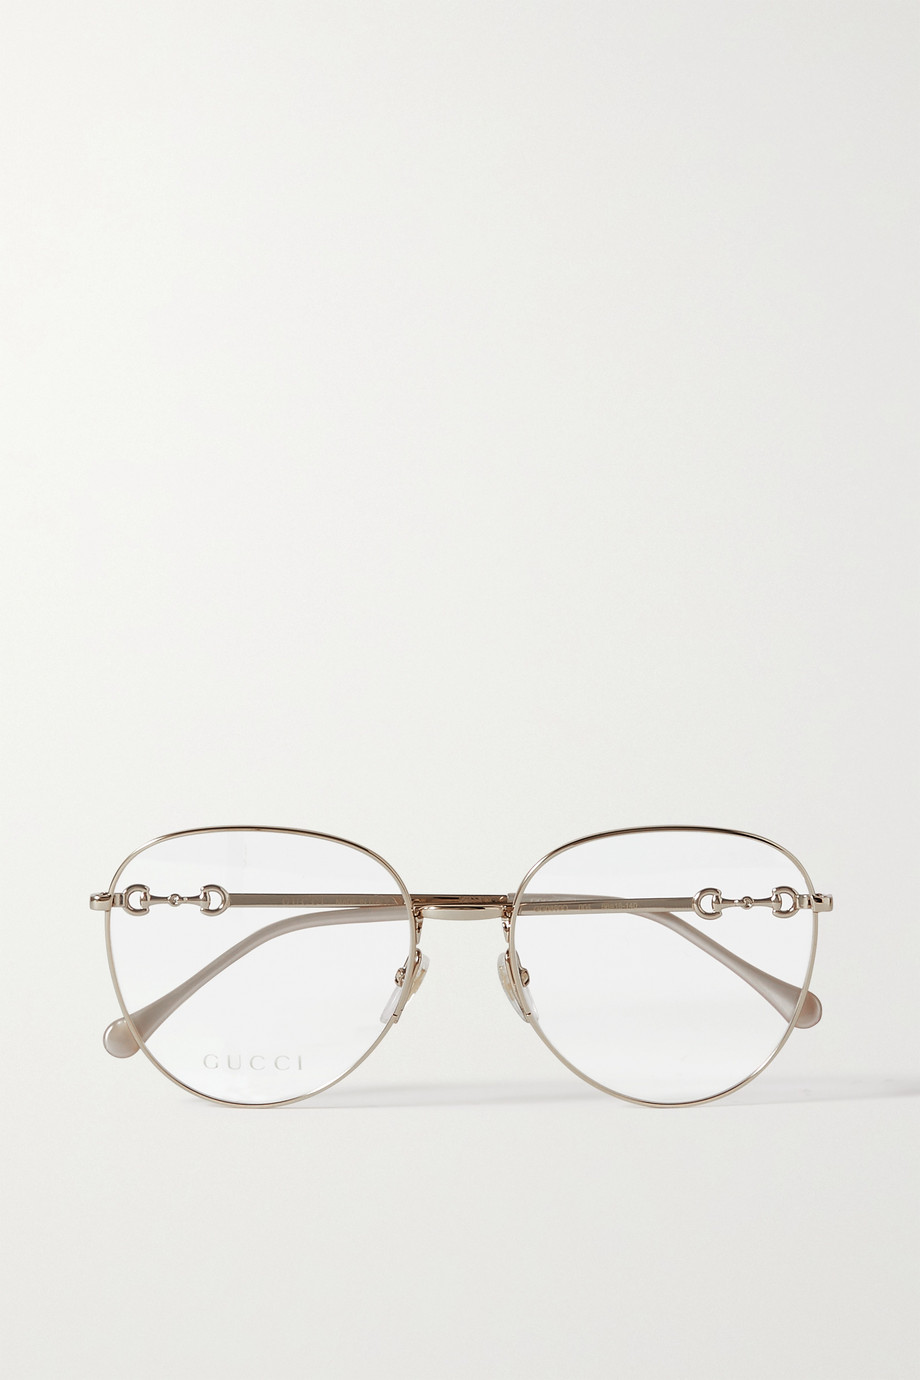 GUCCI Round-frame gold-tone optical glasses